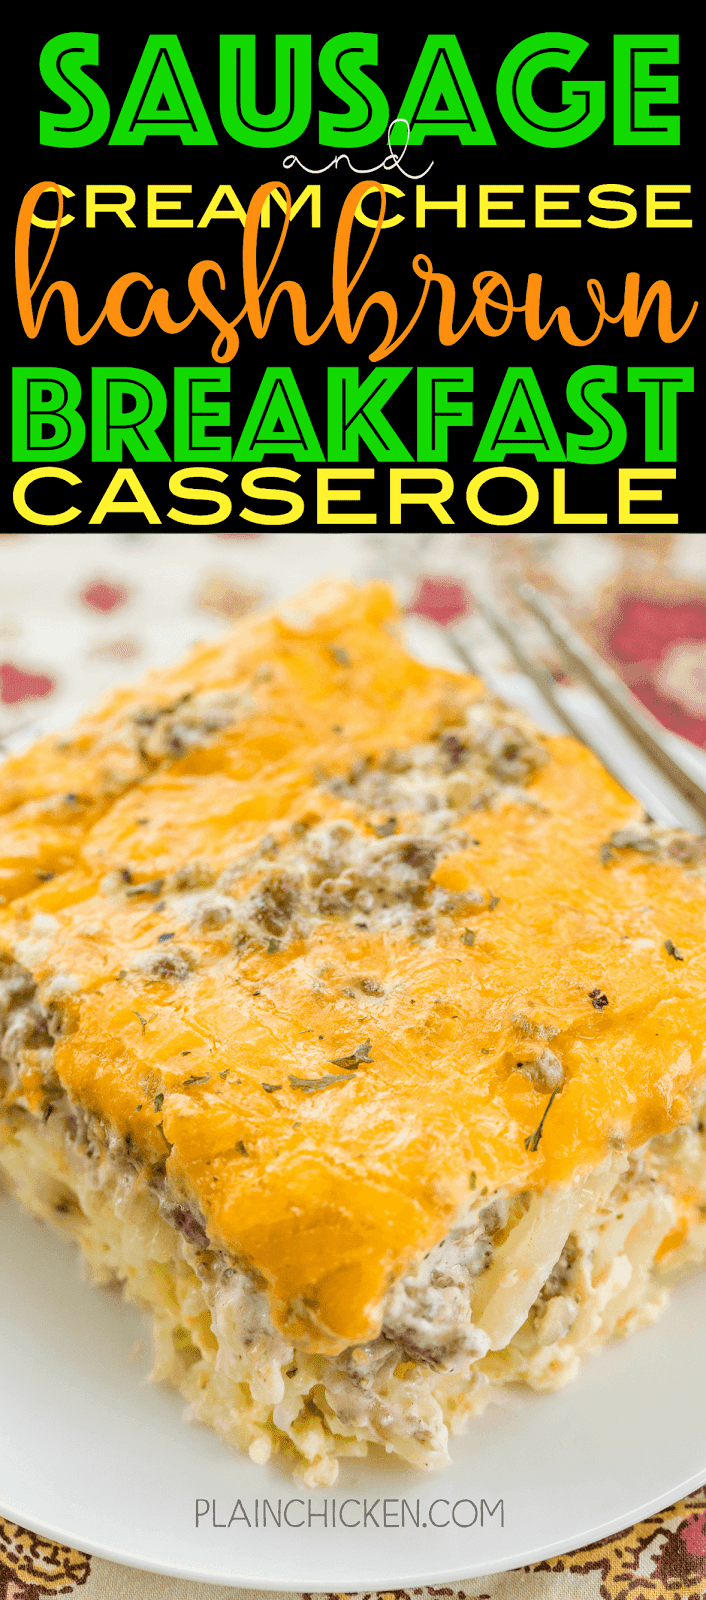 Hashbrown Sausage and Cream Cheese Breakfast Casserole - All my favorite breakfast foods in one easy saucepan! Frozen potato chips, sausages, cream cheese, eggs, and cheddar cheese. You can make ahead and refrigerate or freeze for later. You can divide it between two trays and bake one and freeze one for later. This breakfast casserole is great for breakfast, lunch, great for brunch, lunch, dinner and any next vacation breakfast! SO GOOD!